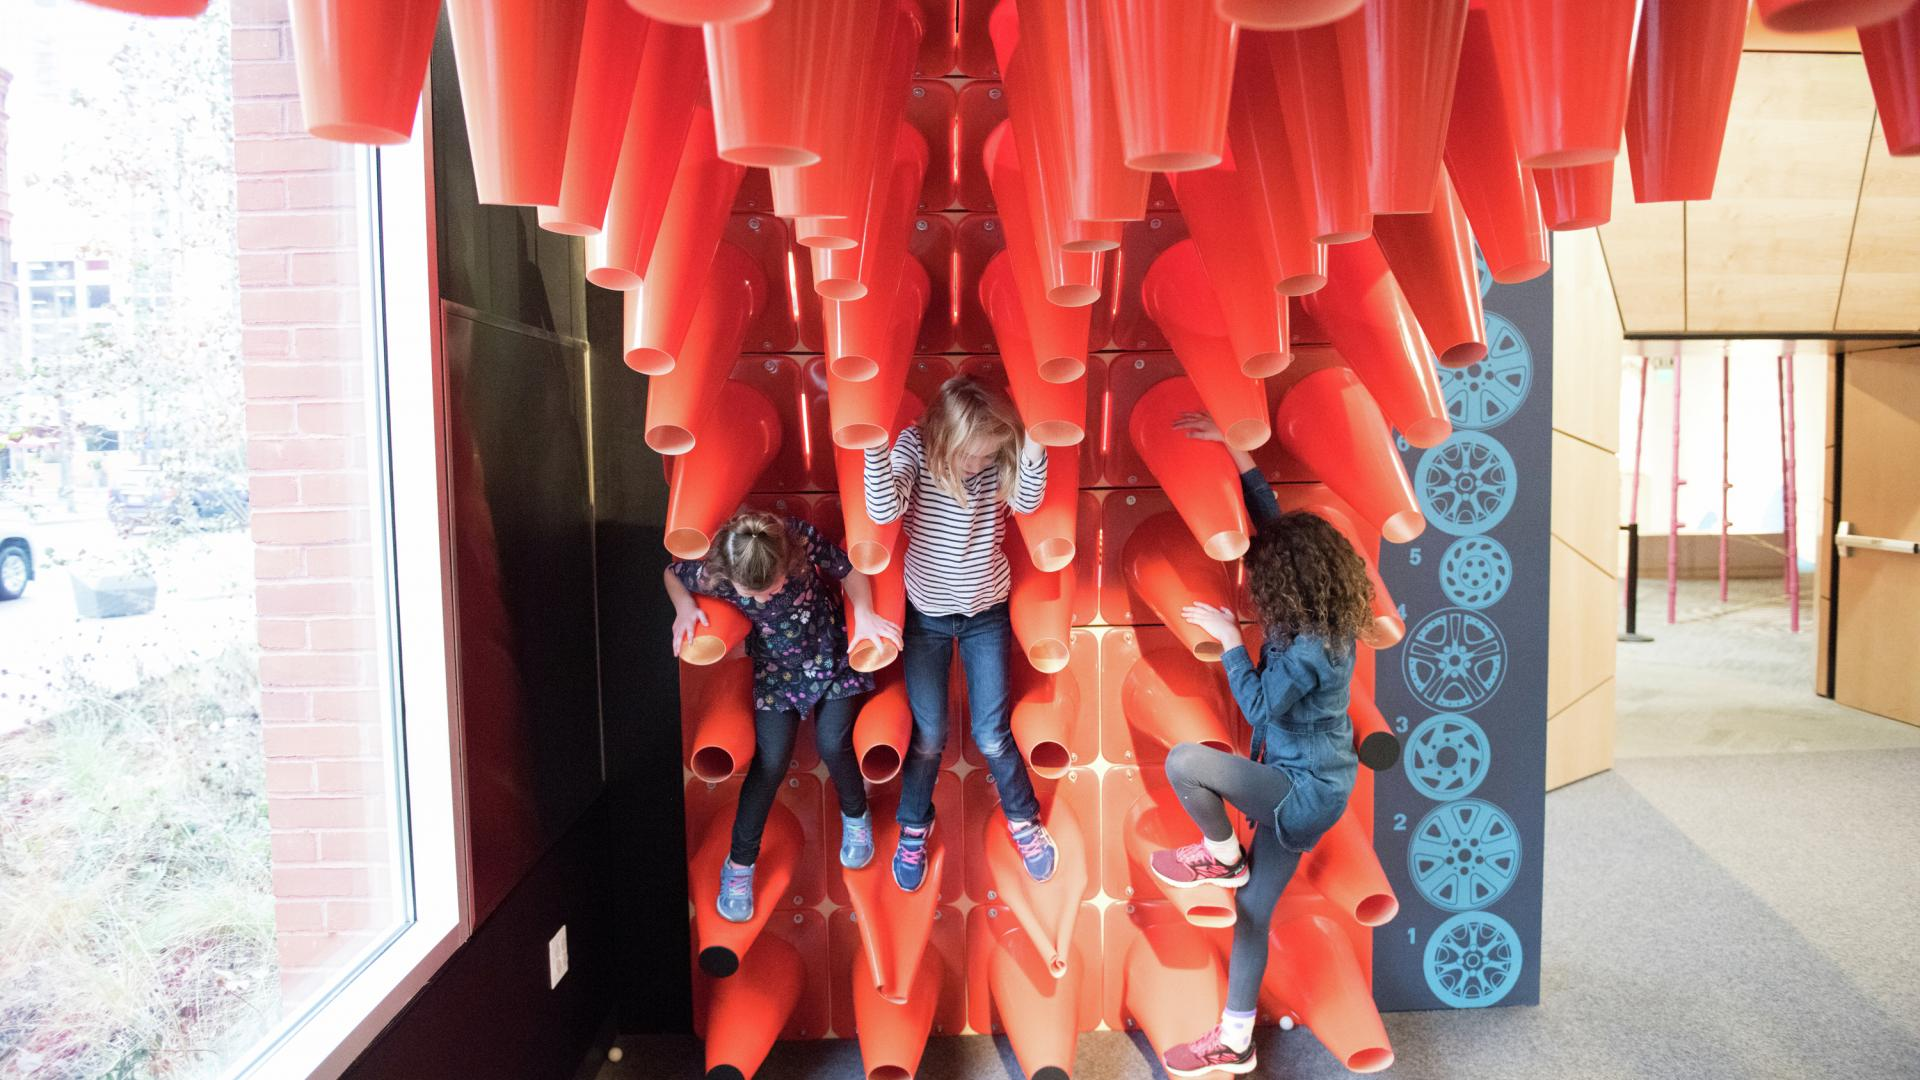 Kids climb on interactive safety cone exhibit